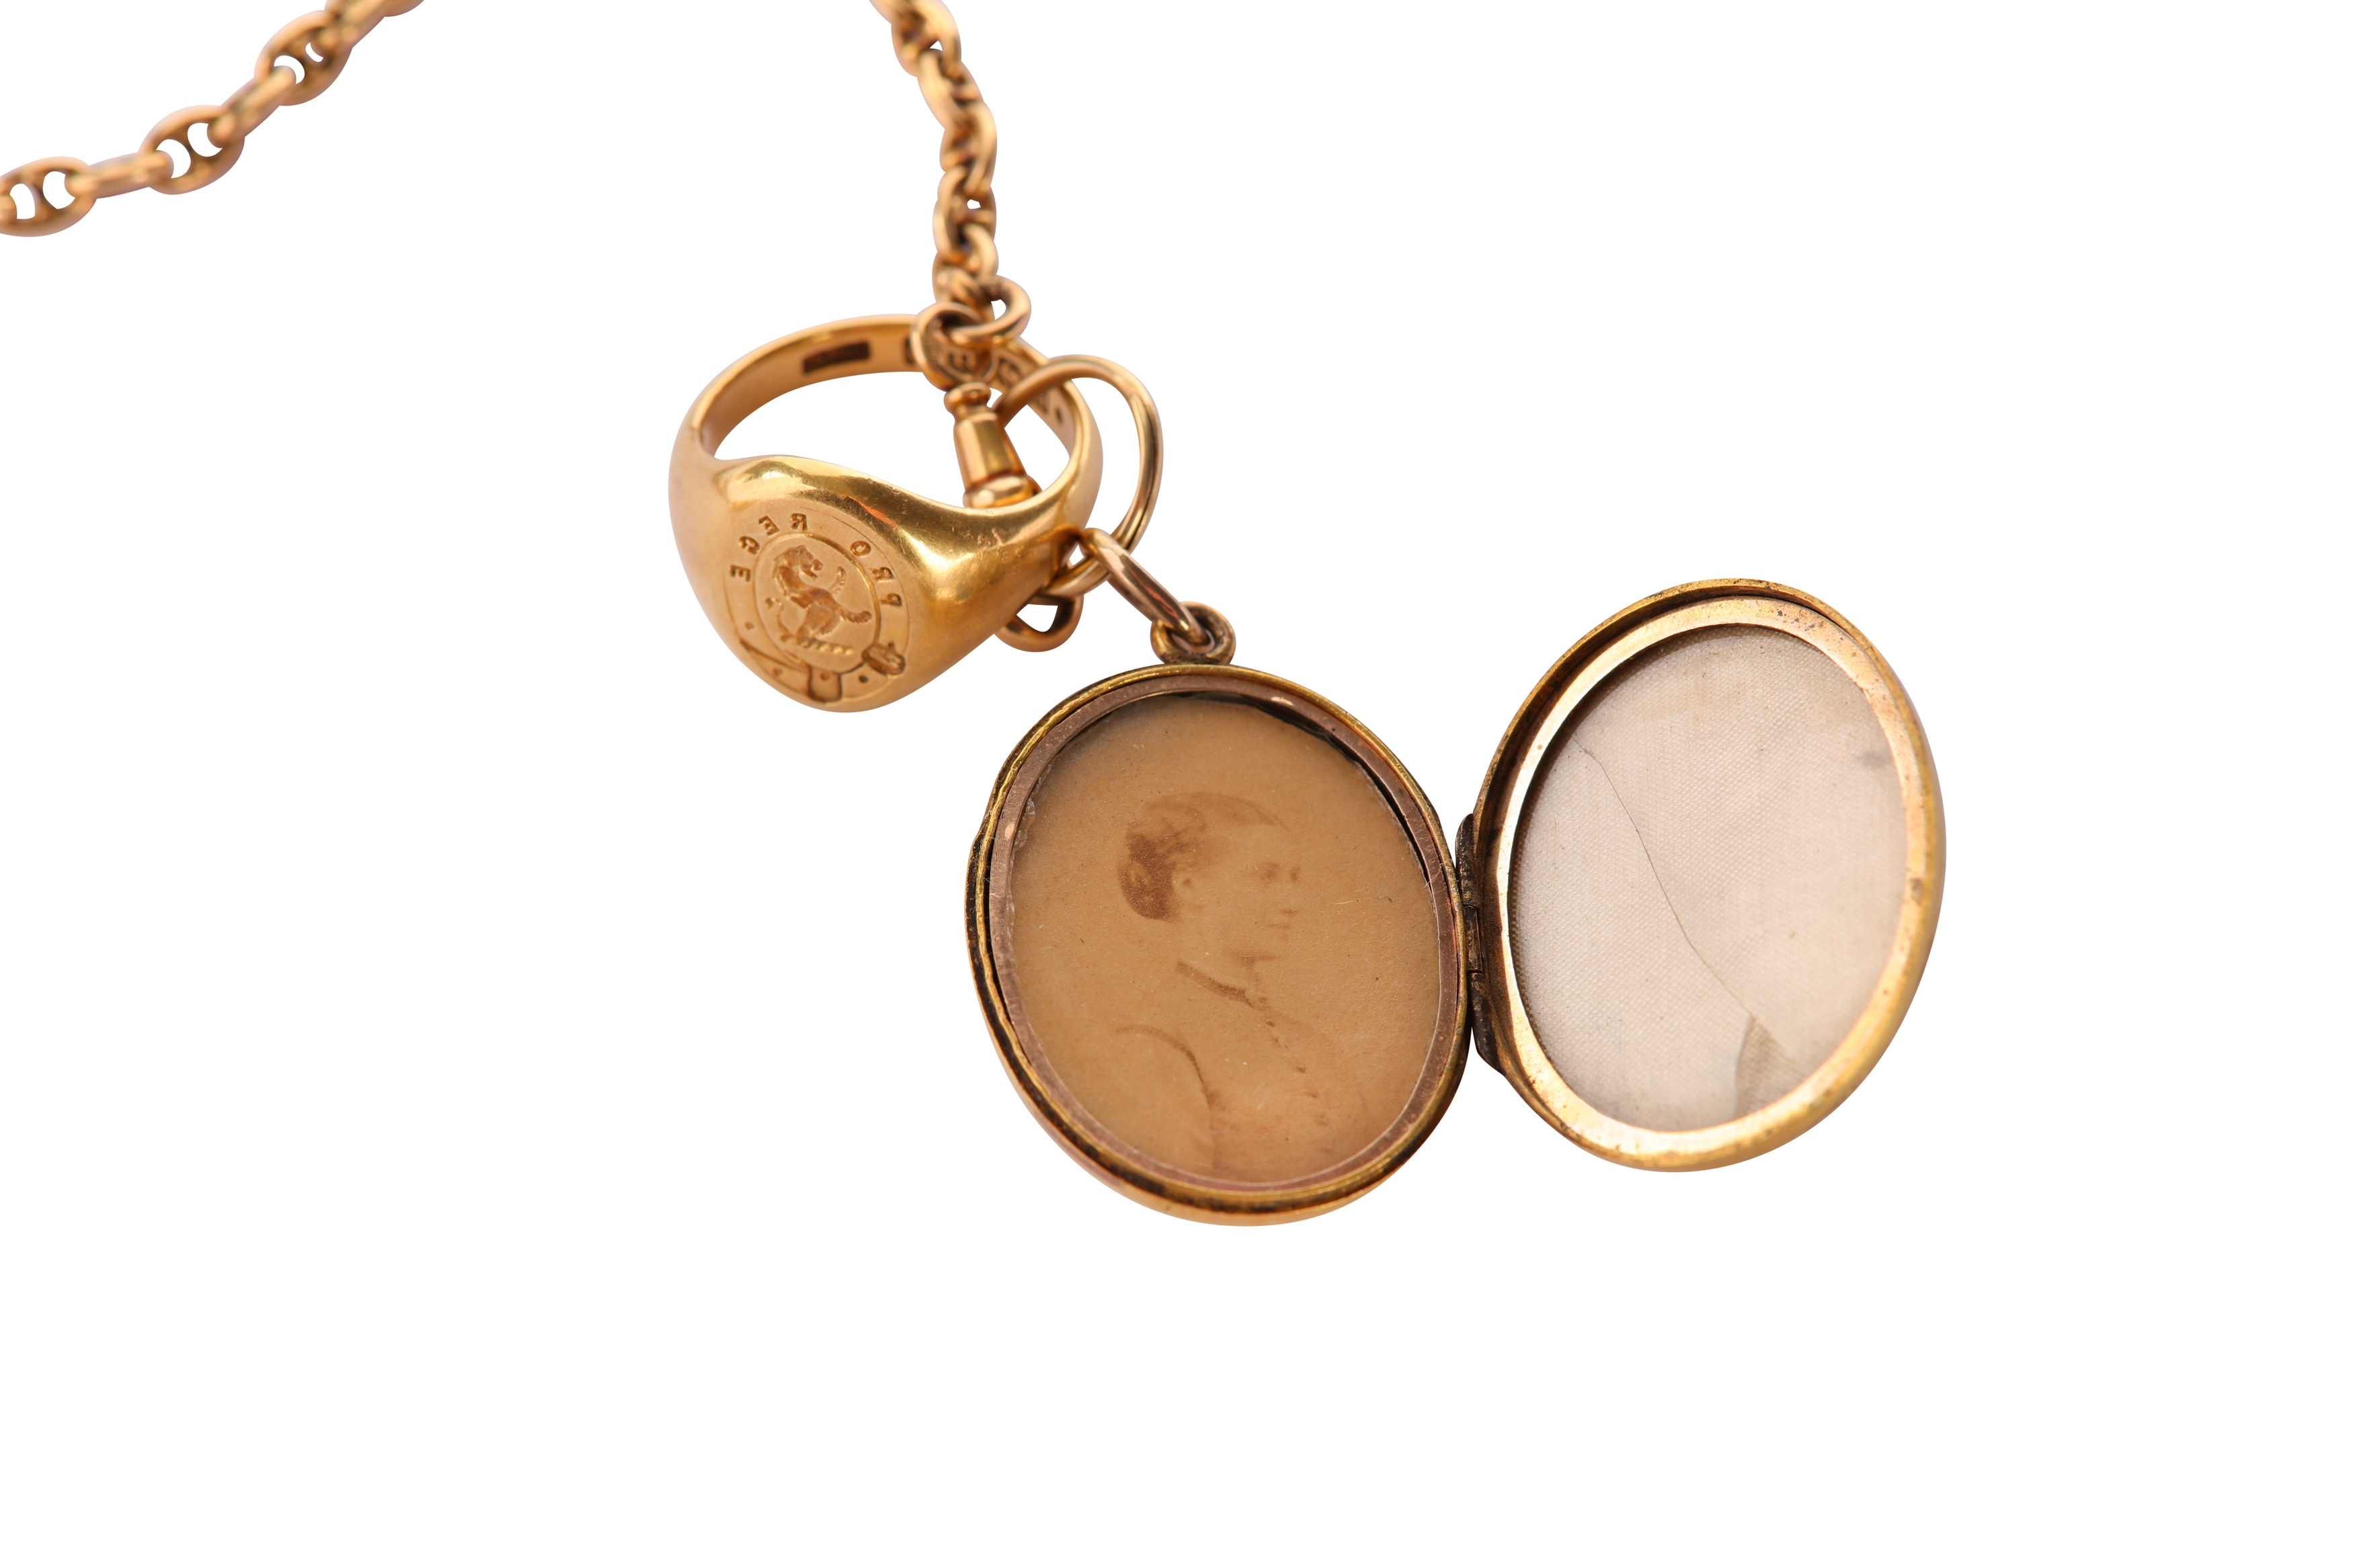 POCKET WATCH. - Image 6 of 6